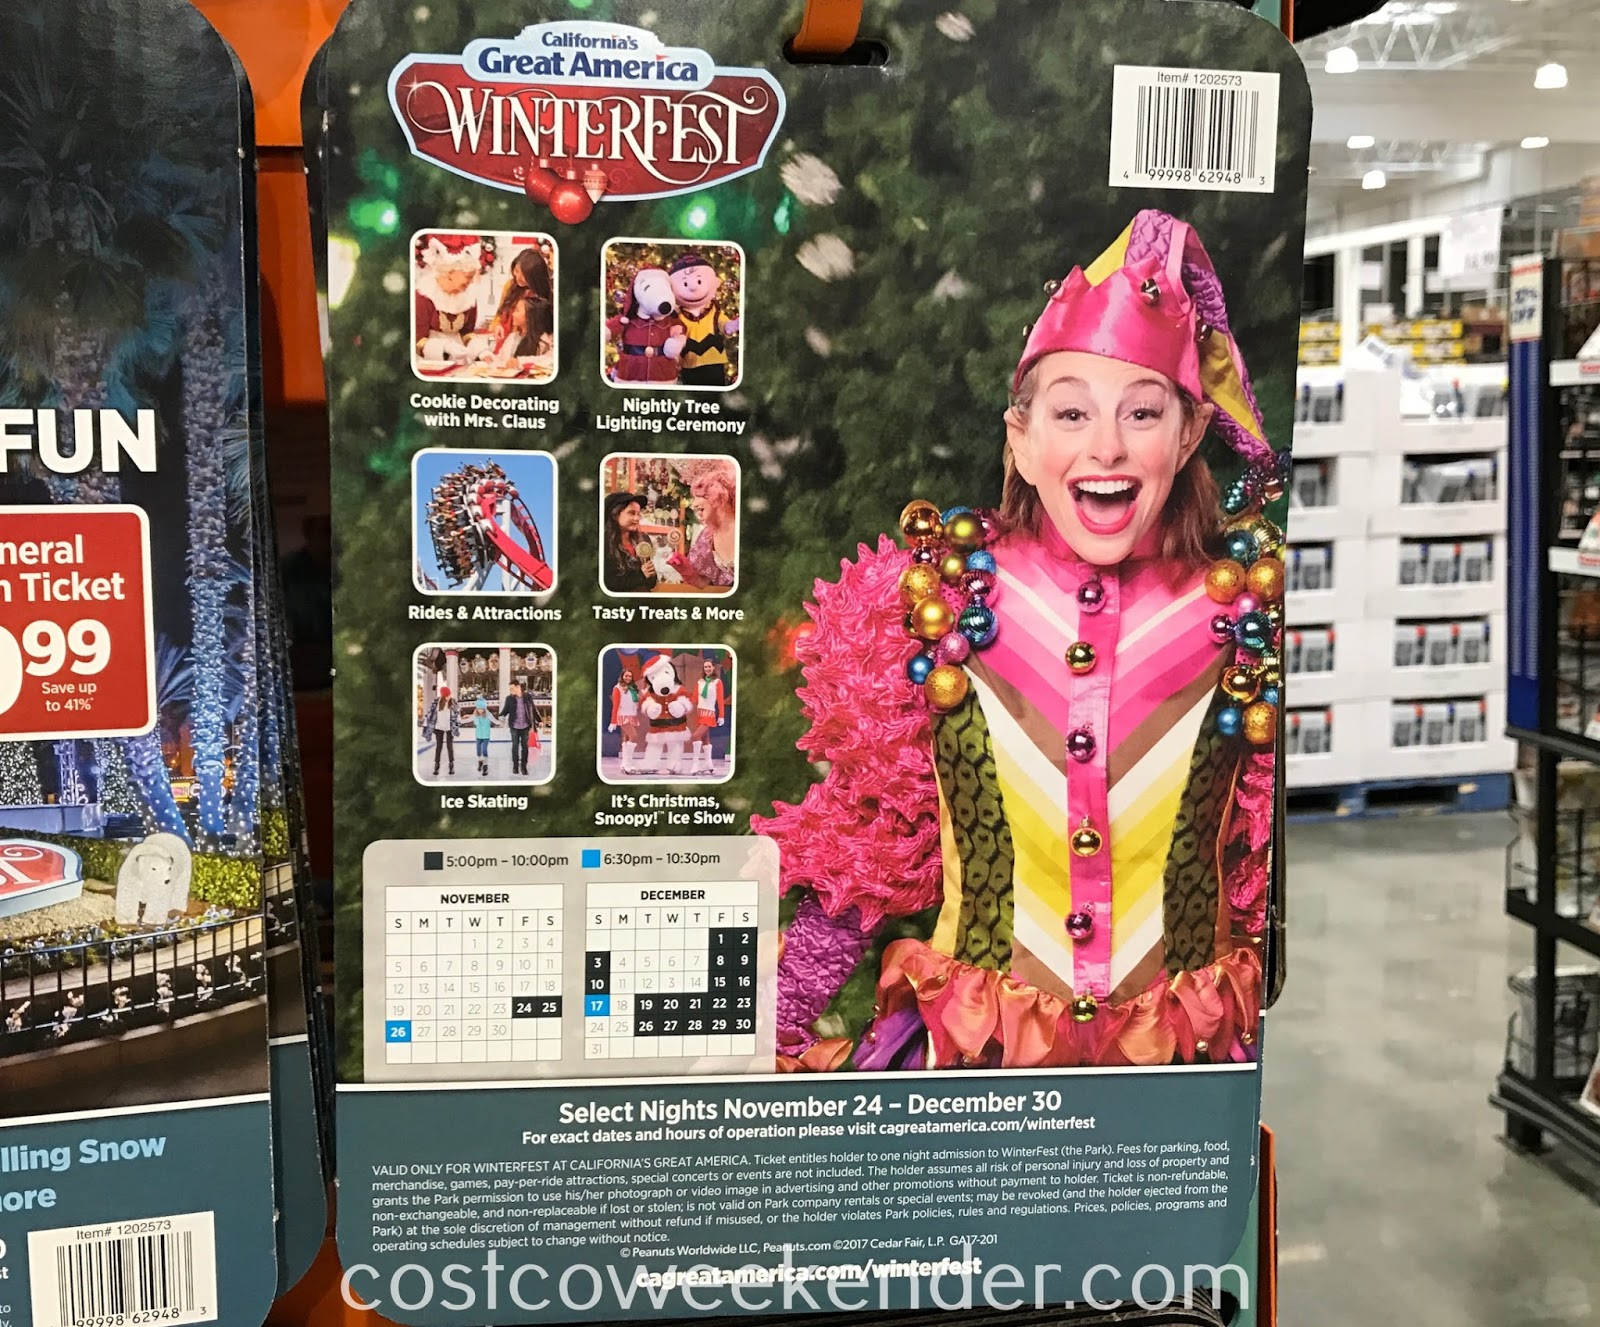 Costco 1202573 - Great America WinterFest: great for the entire family